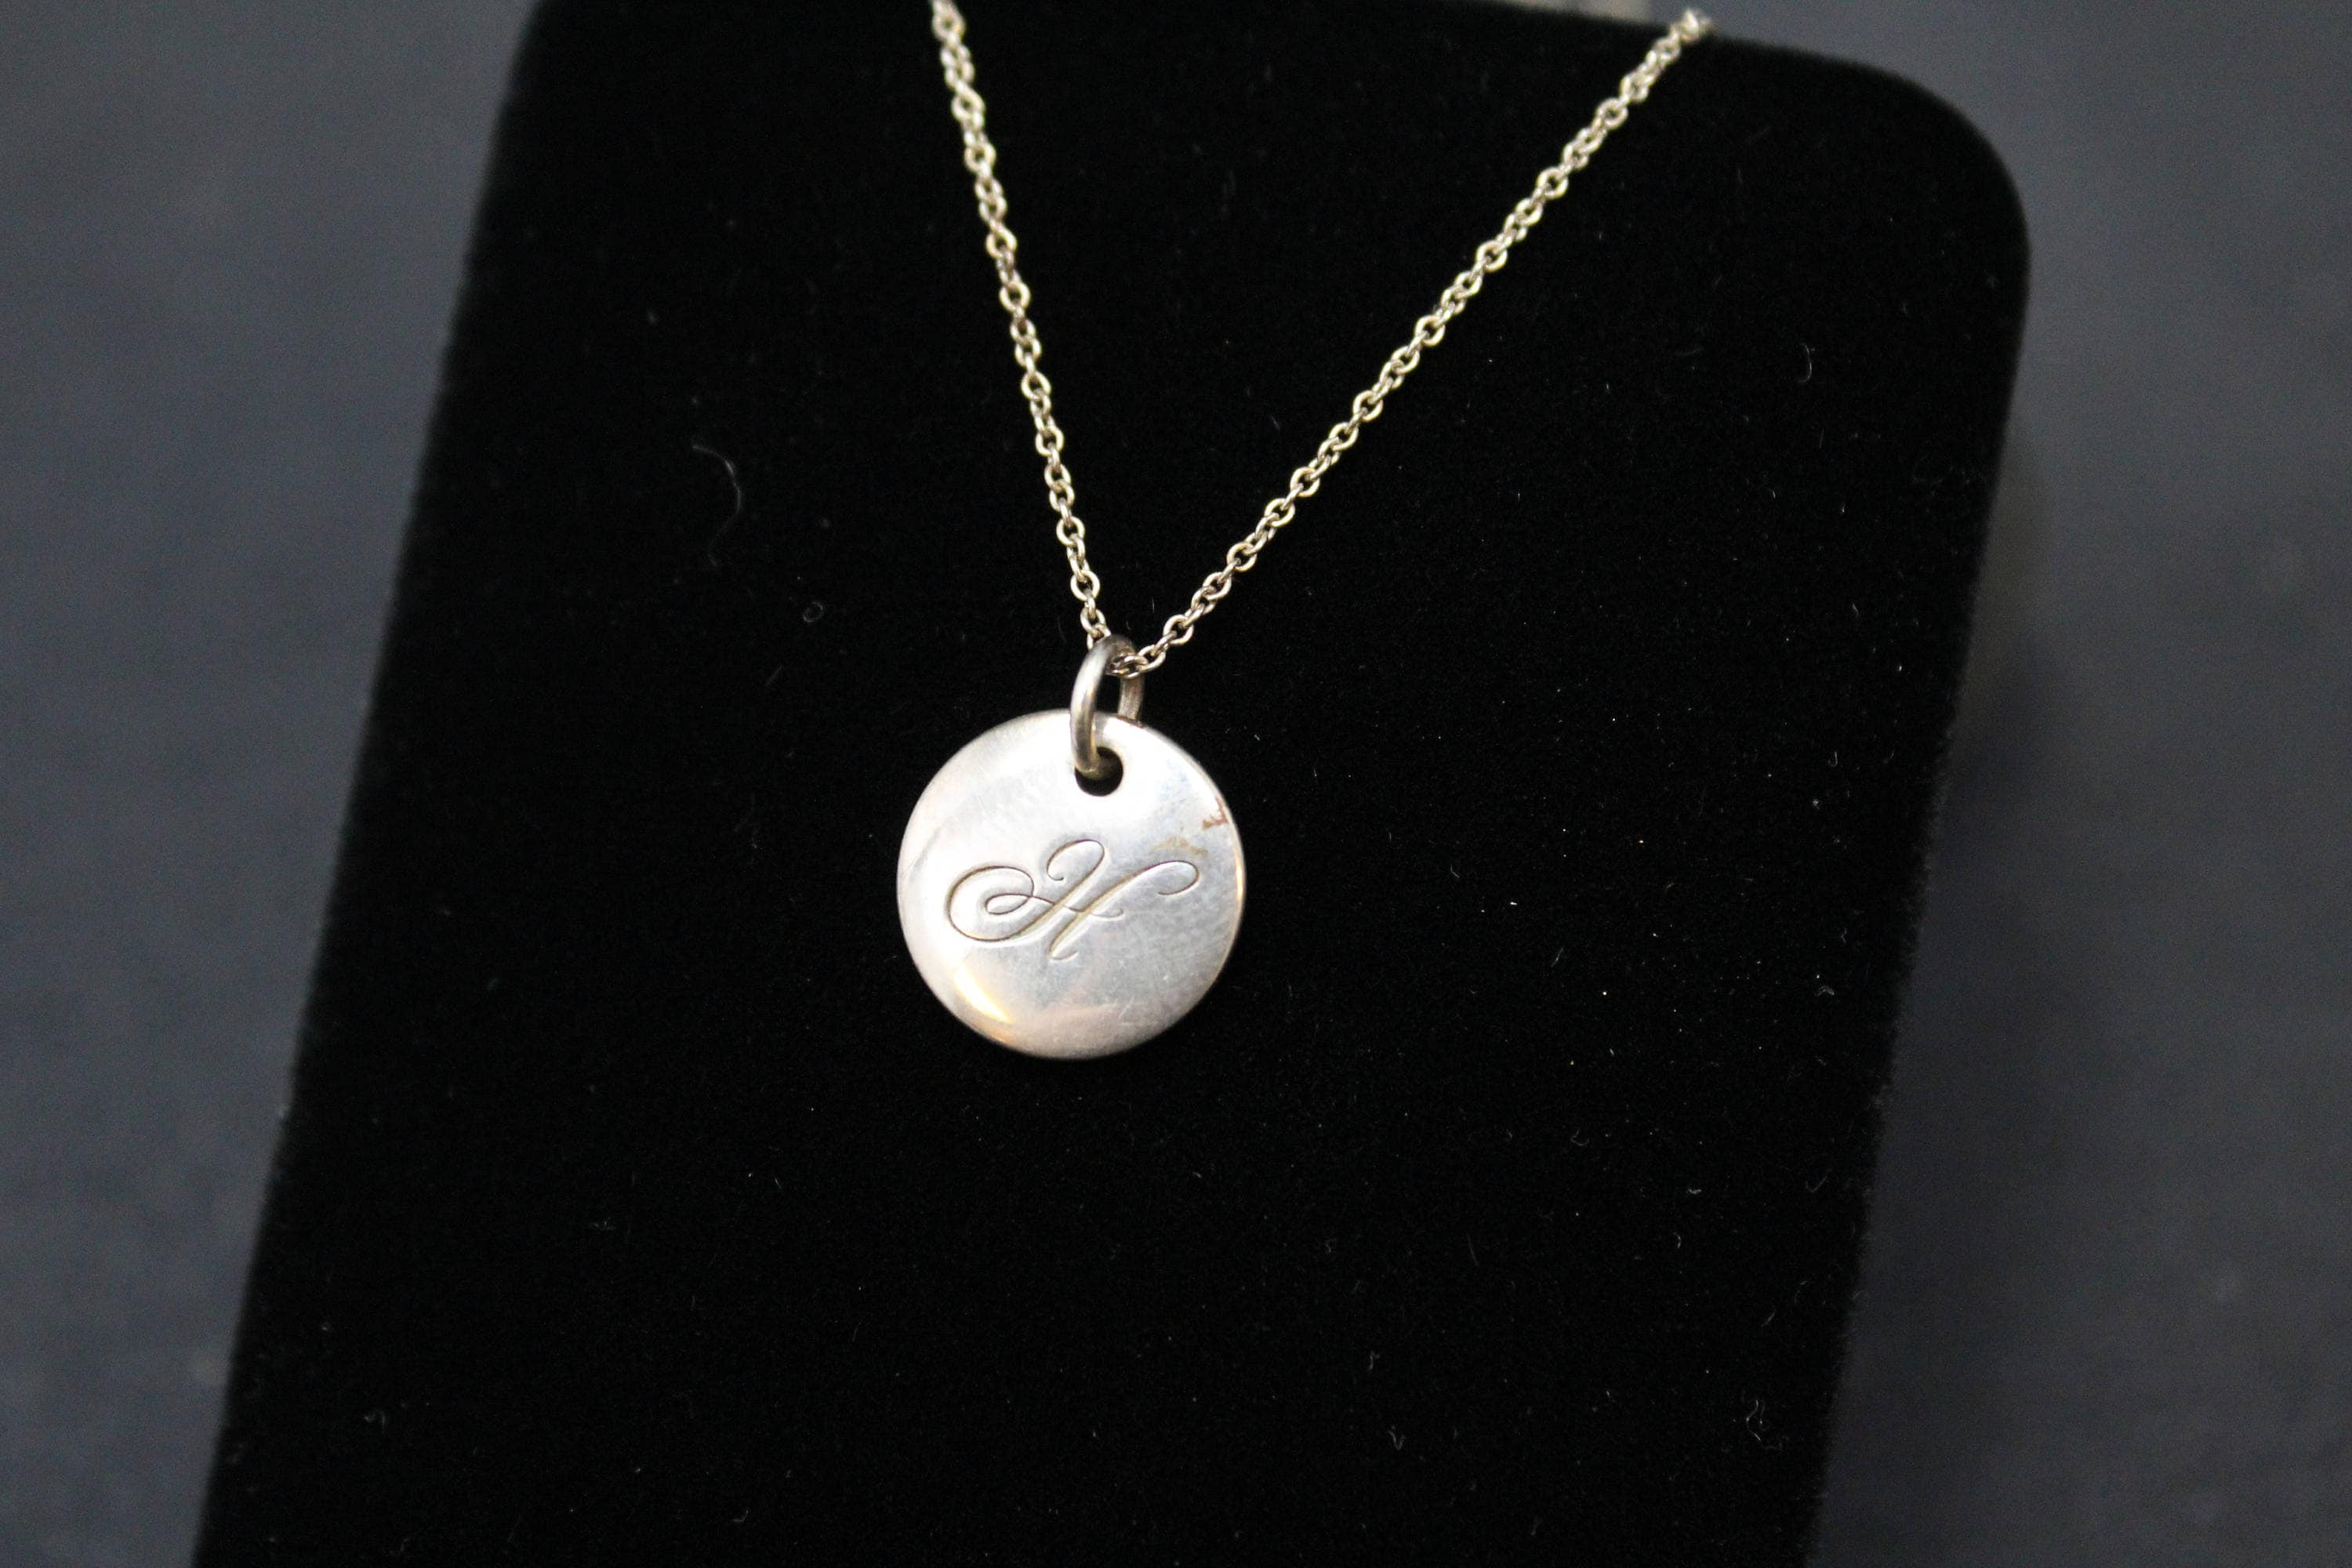 Tiffany company notes initial h disc necklace tiffany h charm tiffany company notes initial h disc necklace tiffany h charm tiffany h pendant tiffany and company h necklace tiffany alphabet aloadofball Images